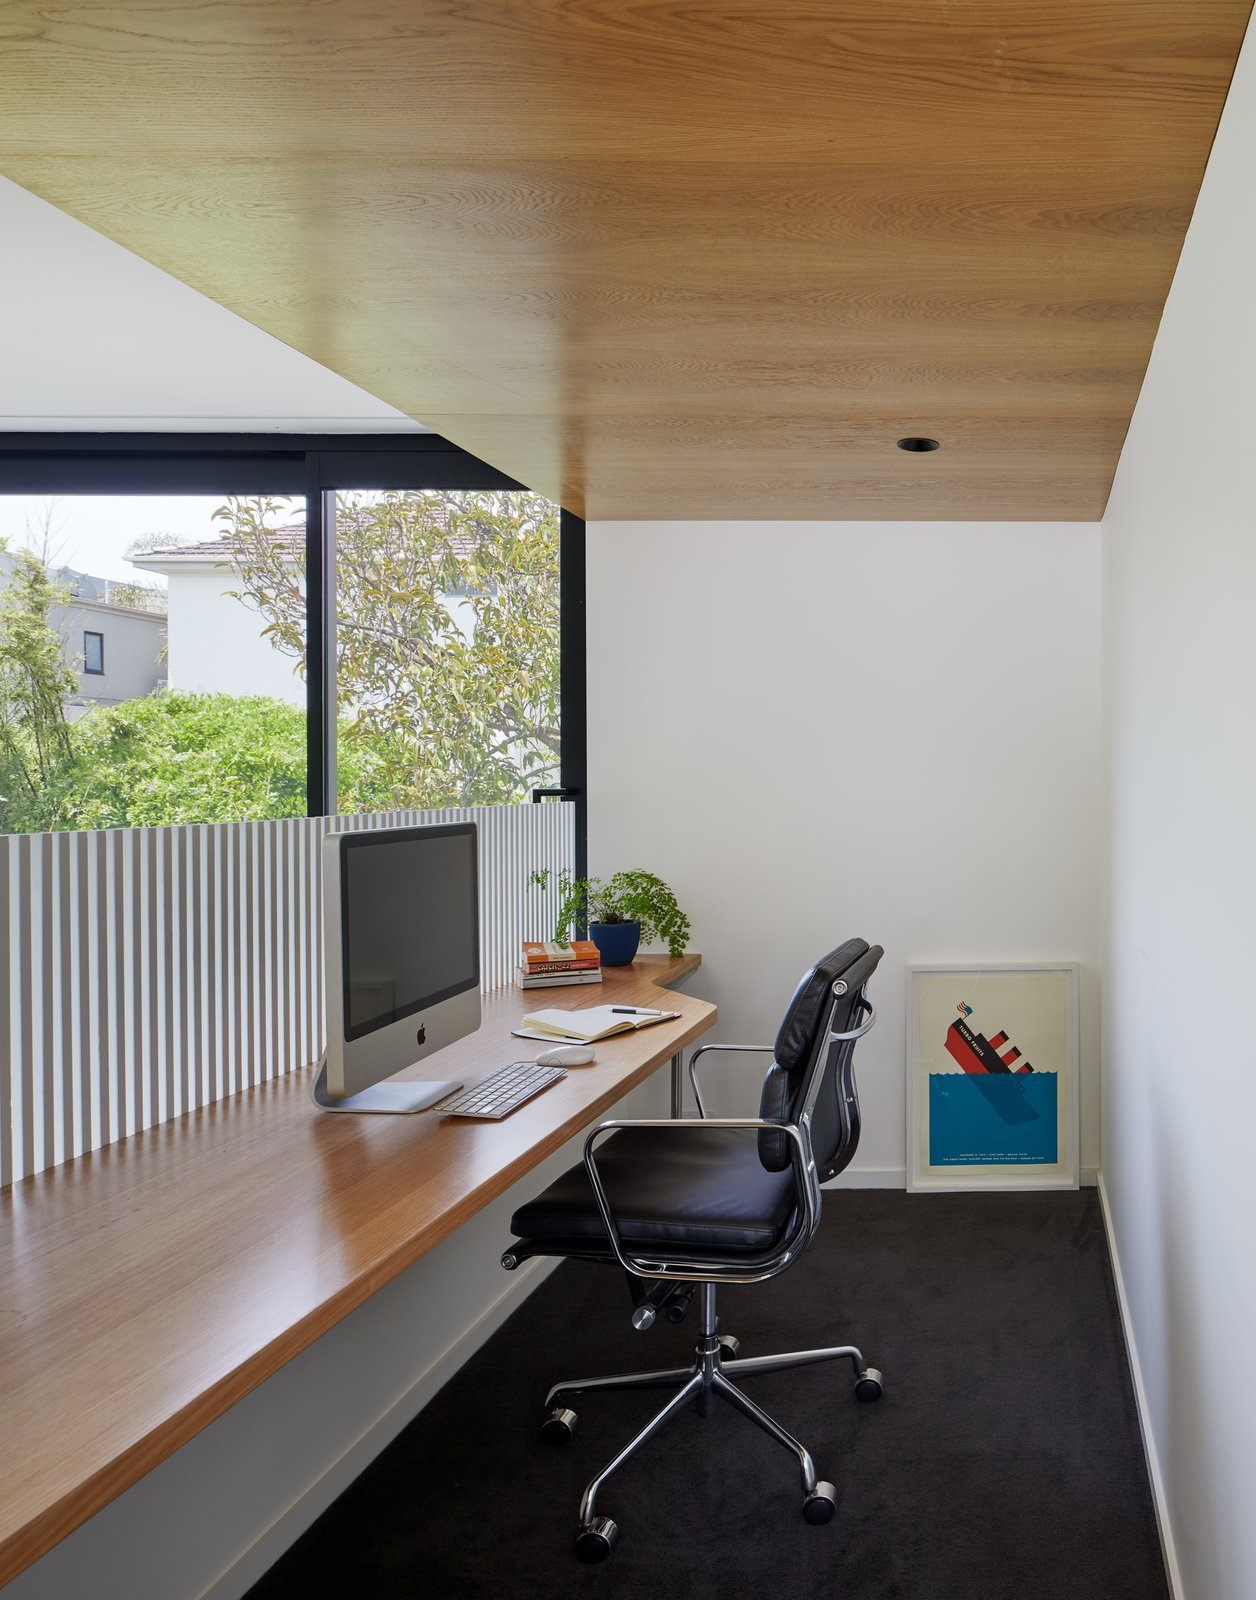 Office, Study Room Type, Chair, Desk, and Carpet Floor Study space  Photo 11 of 21 in Thanks to a Double-Height Dining Room, a Melbourne Home Basks in Sunshine and Courtyard Views from South Yarra Void House